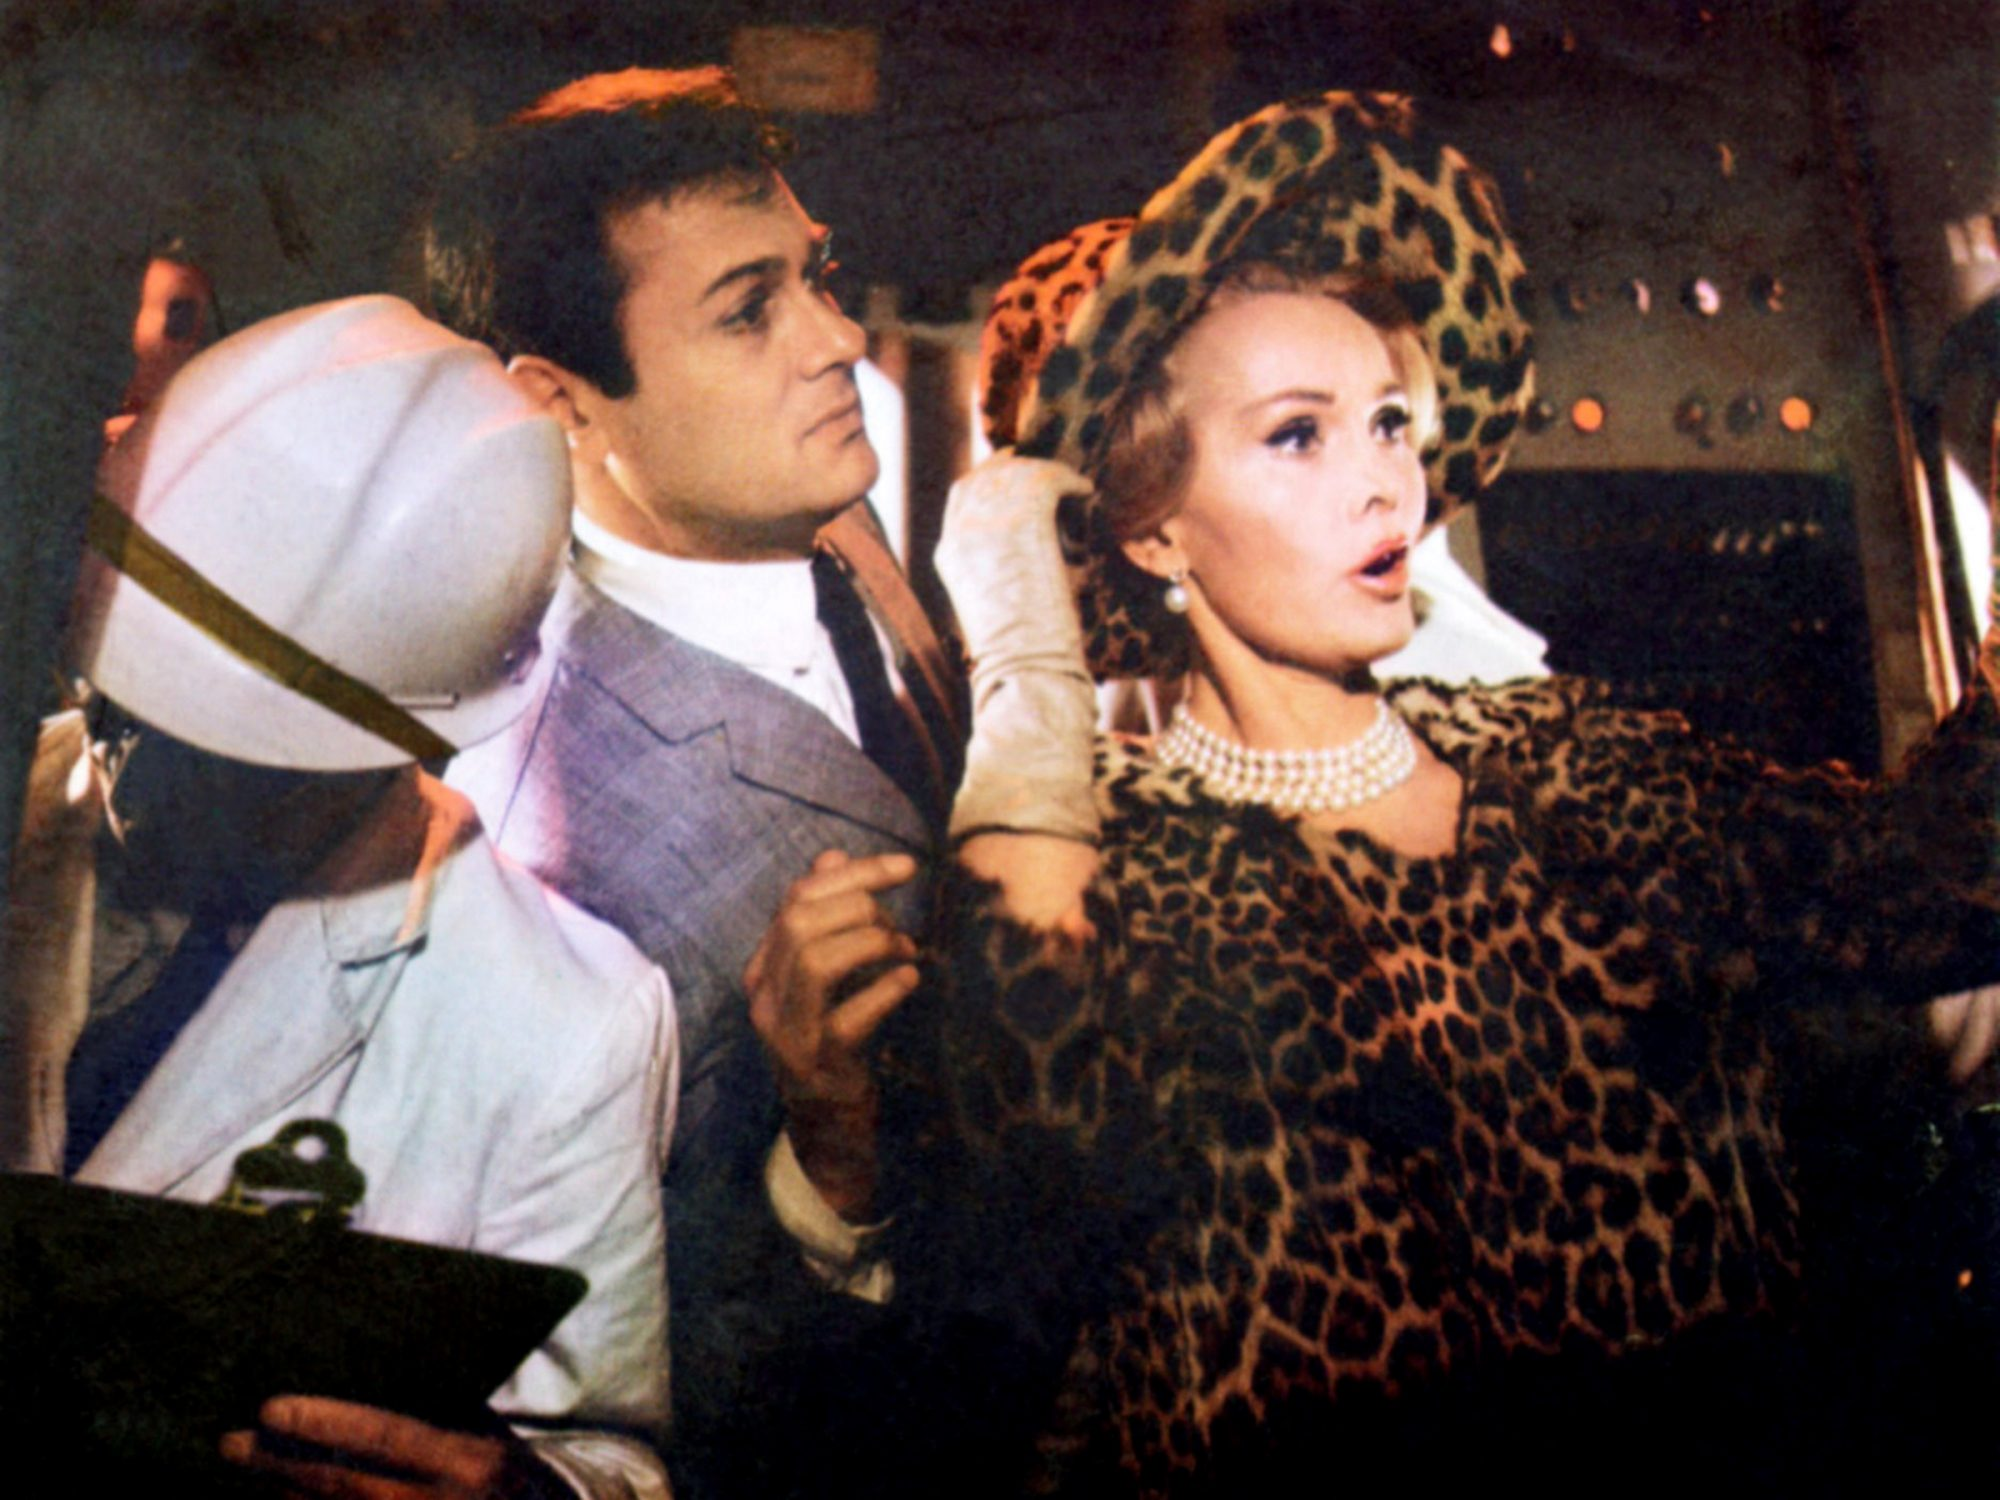 DROP DEAD DARLING, (aka ARRIVEDERCI, BABY!), facing right from left: Tony Curtis, Zsa Zsa Gabor, 196